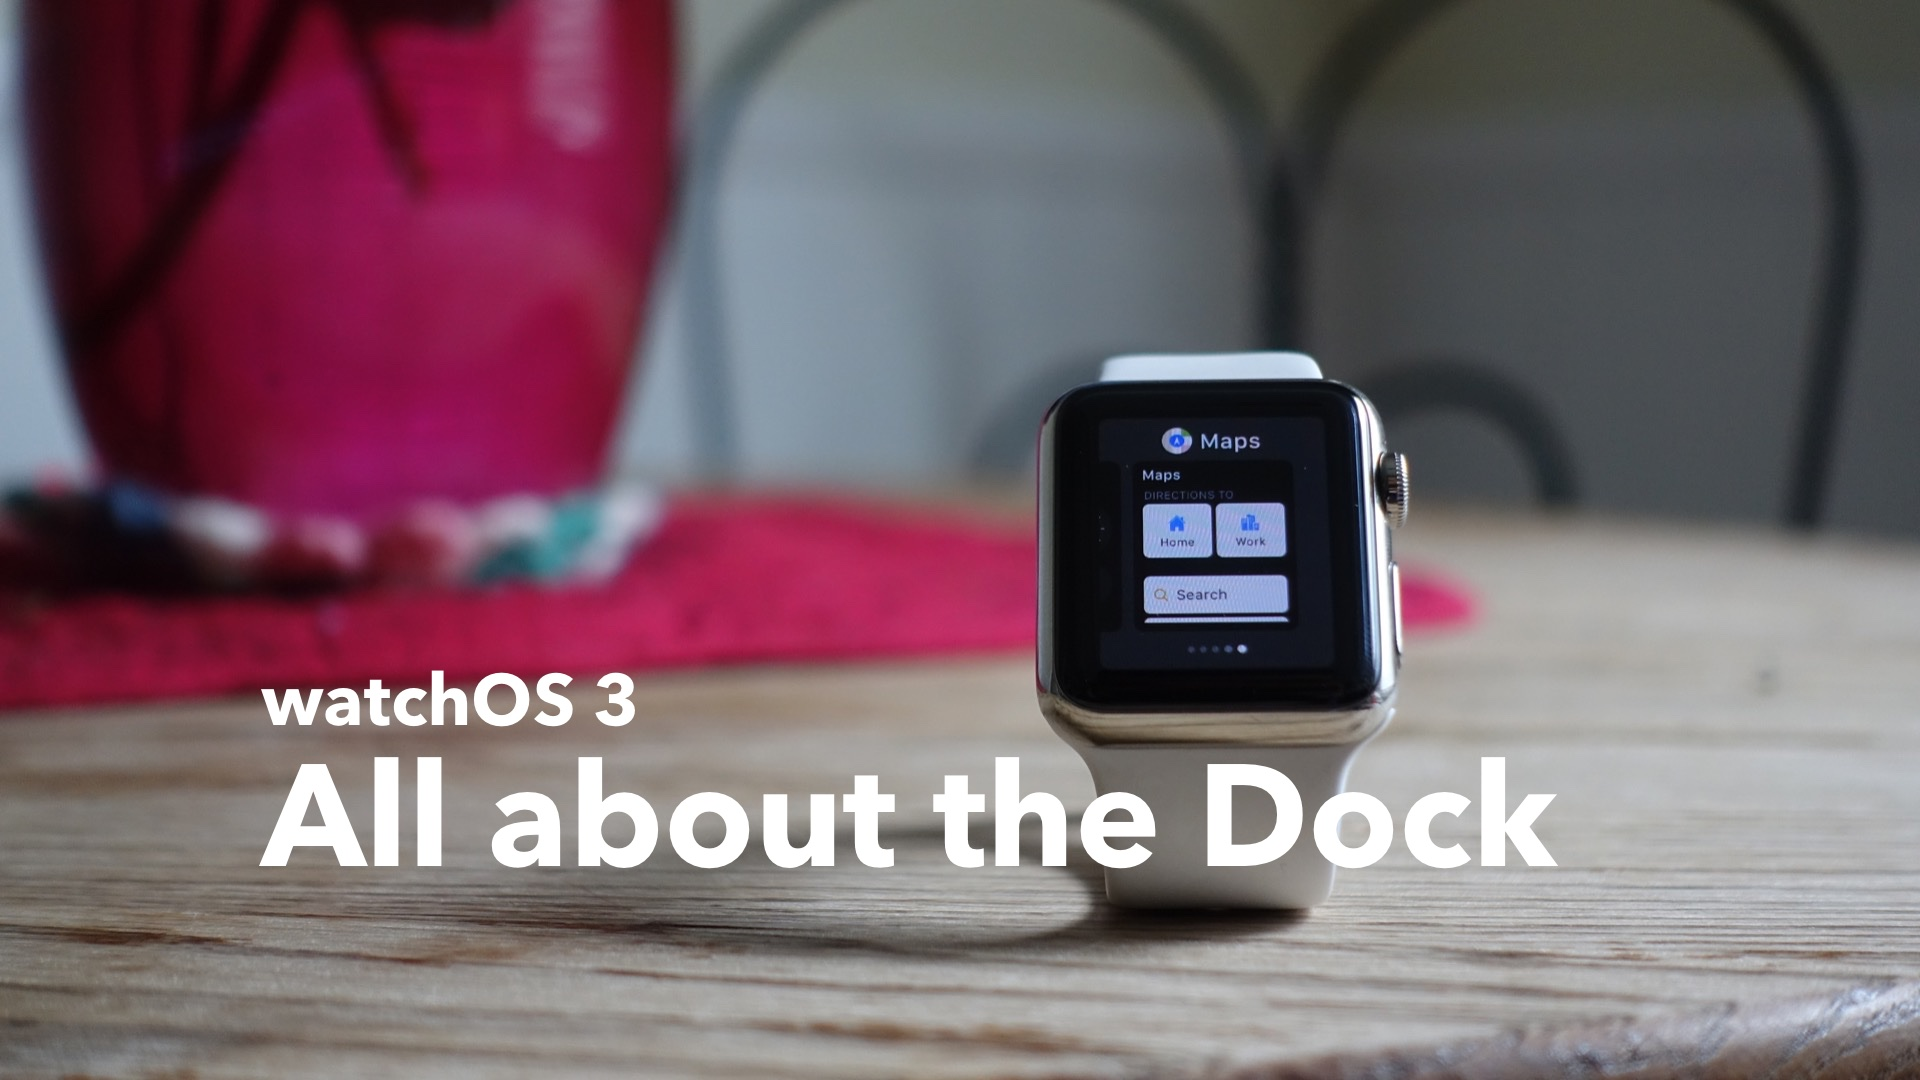 Watchos 3 dock